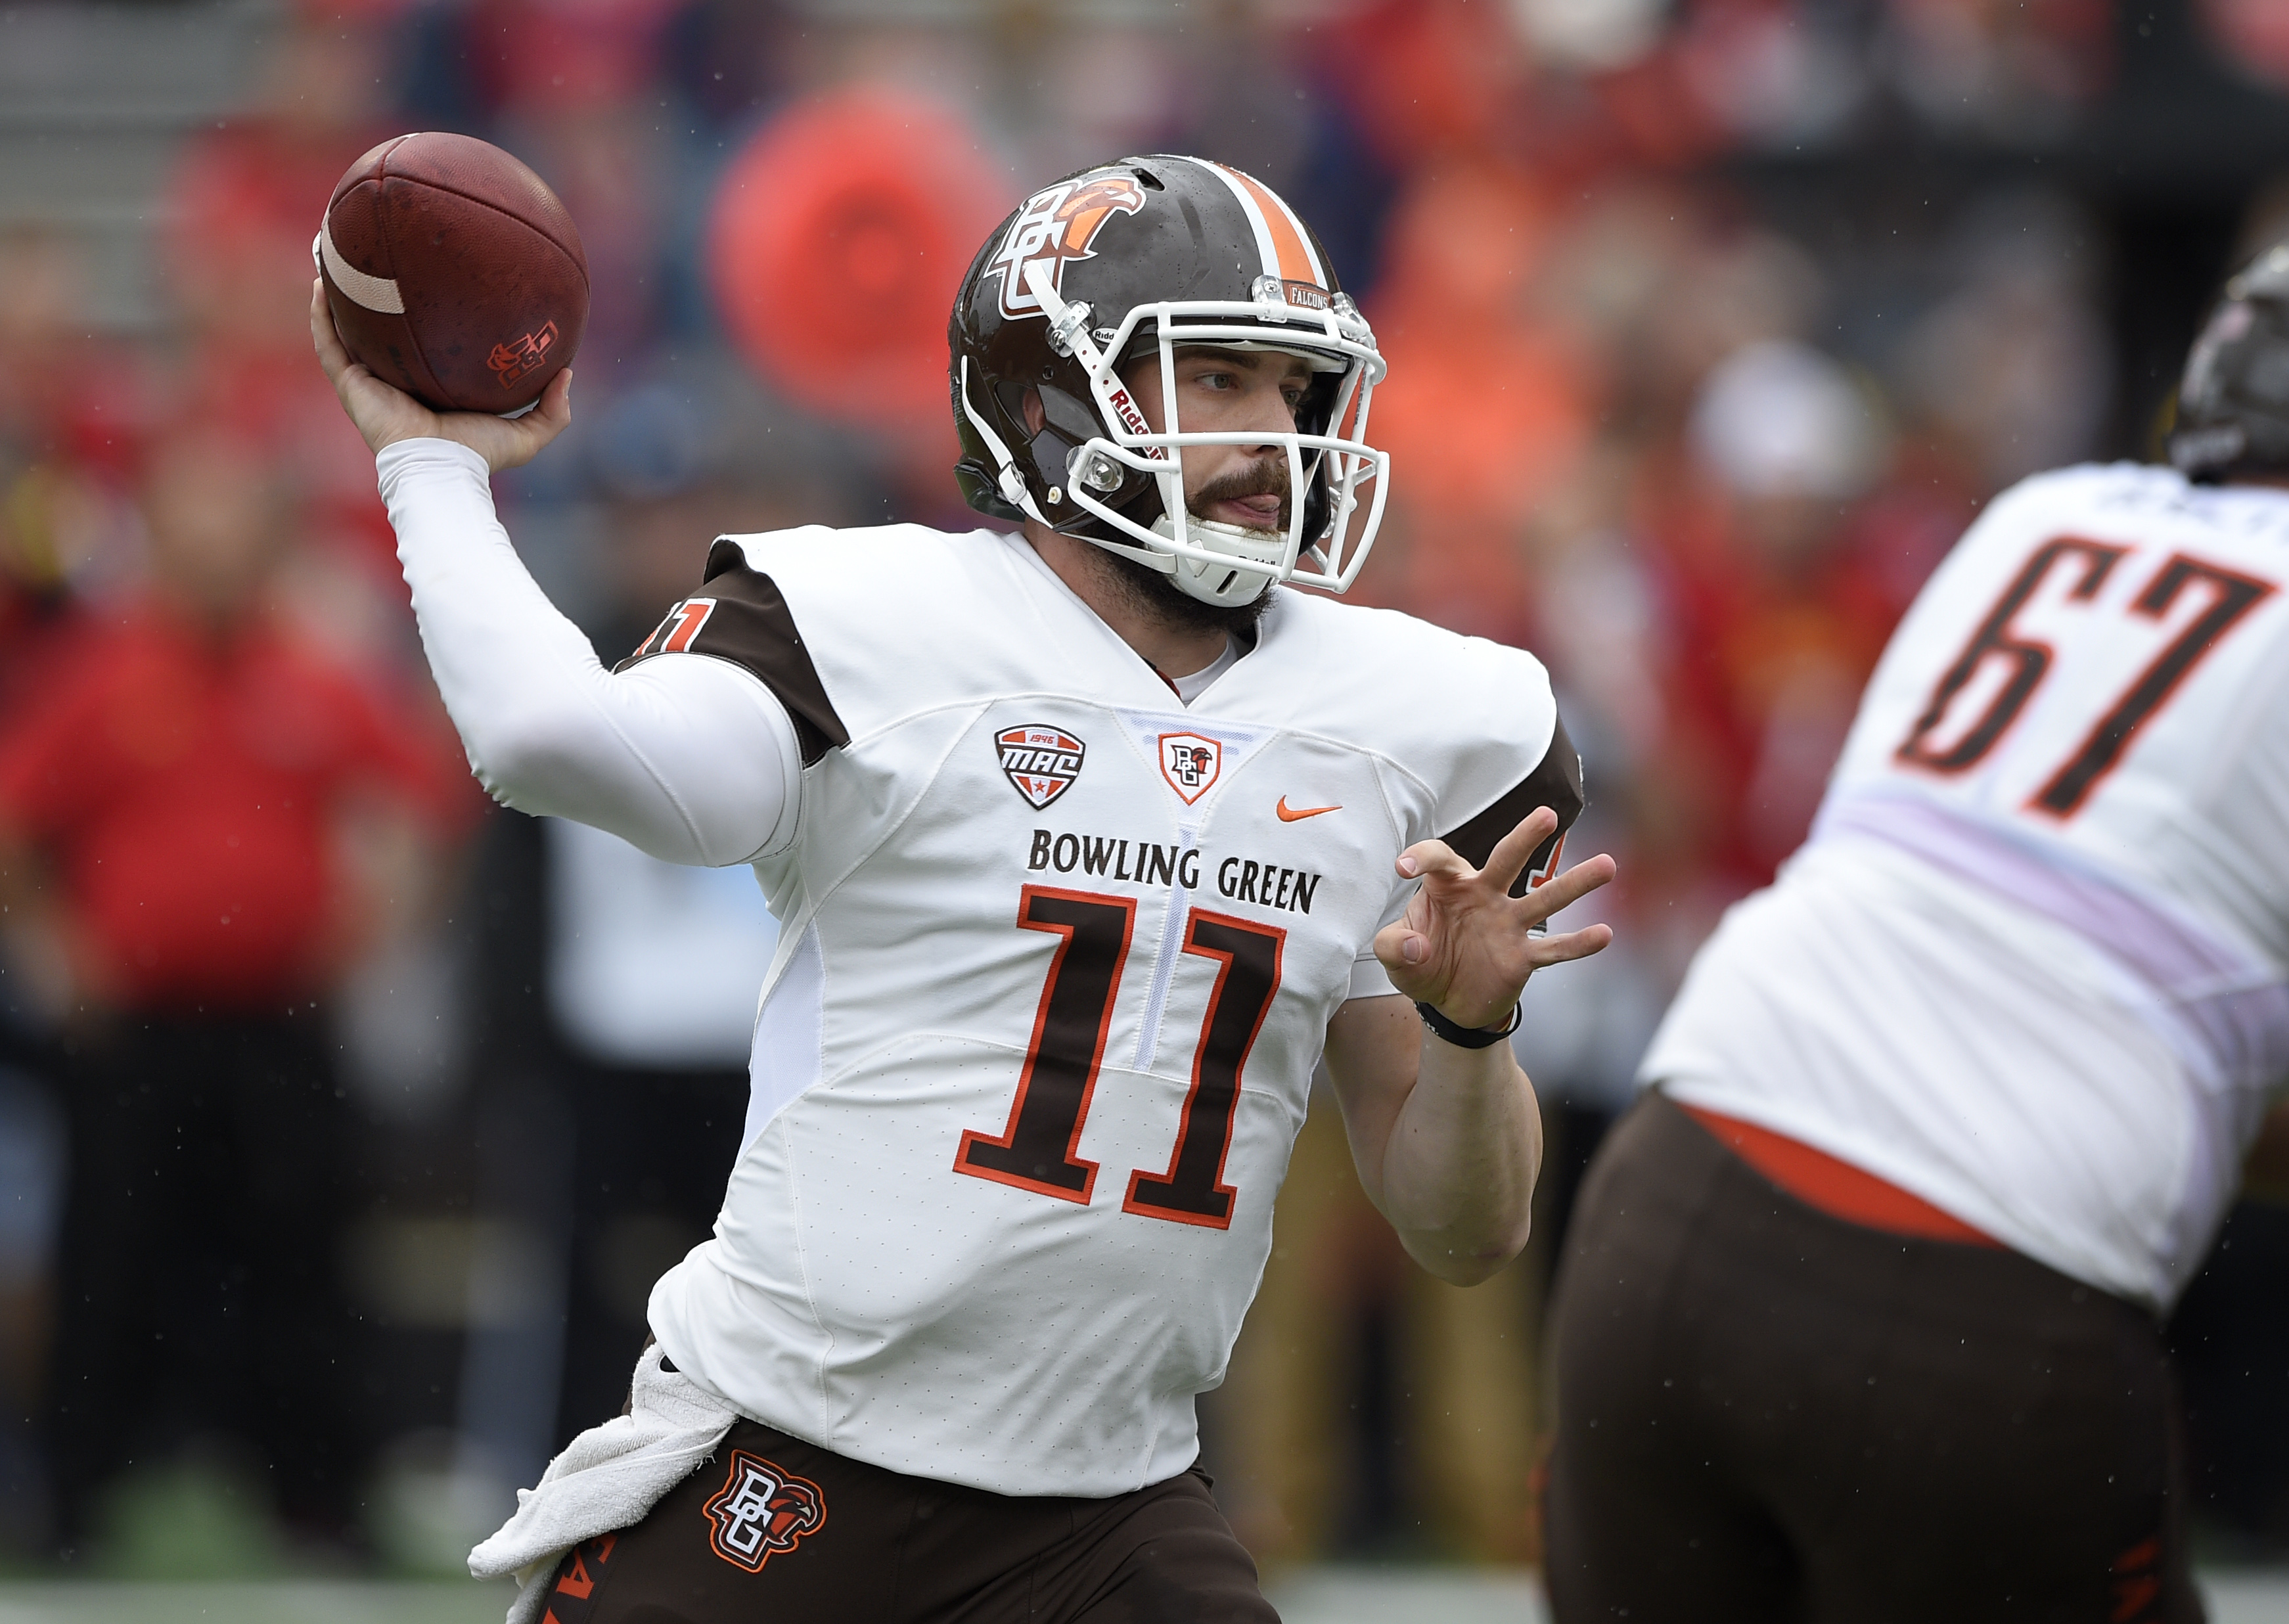 Bowling Green quarterback Matt Johnson (11) throws a pass against Maryland during the first half of an NCAA college football game, Saturday, Sept. 12, 2015, in College Park, Md. (AP Photo/Nick Wass)